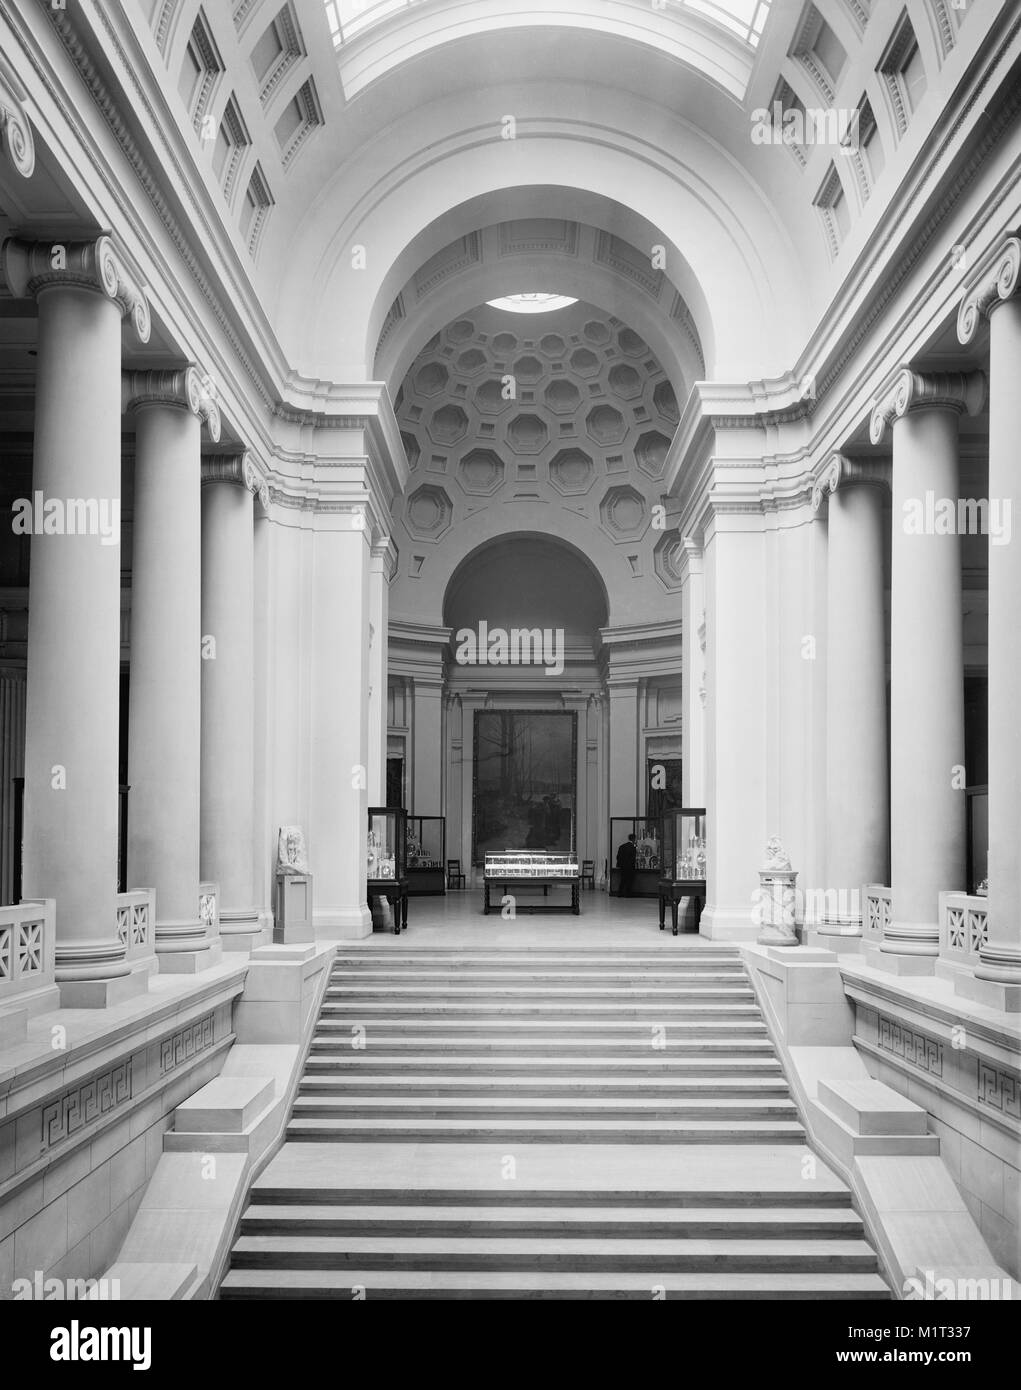 Stairway and Rotunda, Museum of Fine Arts, Boston, Massachusetts, USA, Detroit Publishing Company, early 1910's - Stock Image